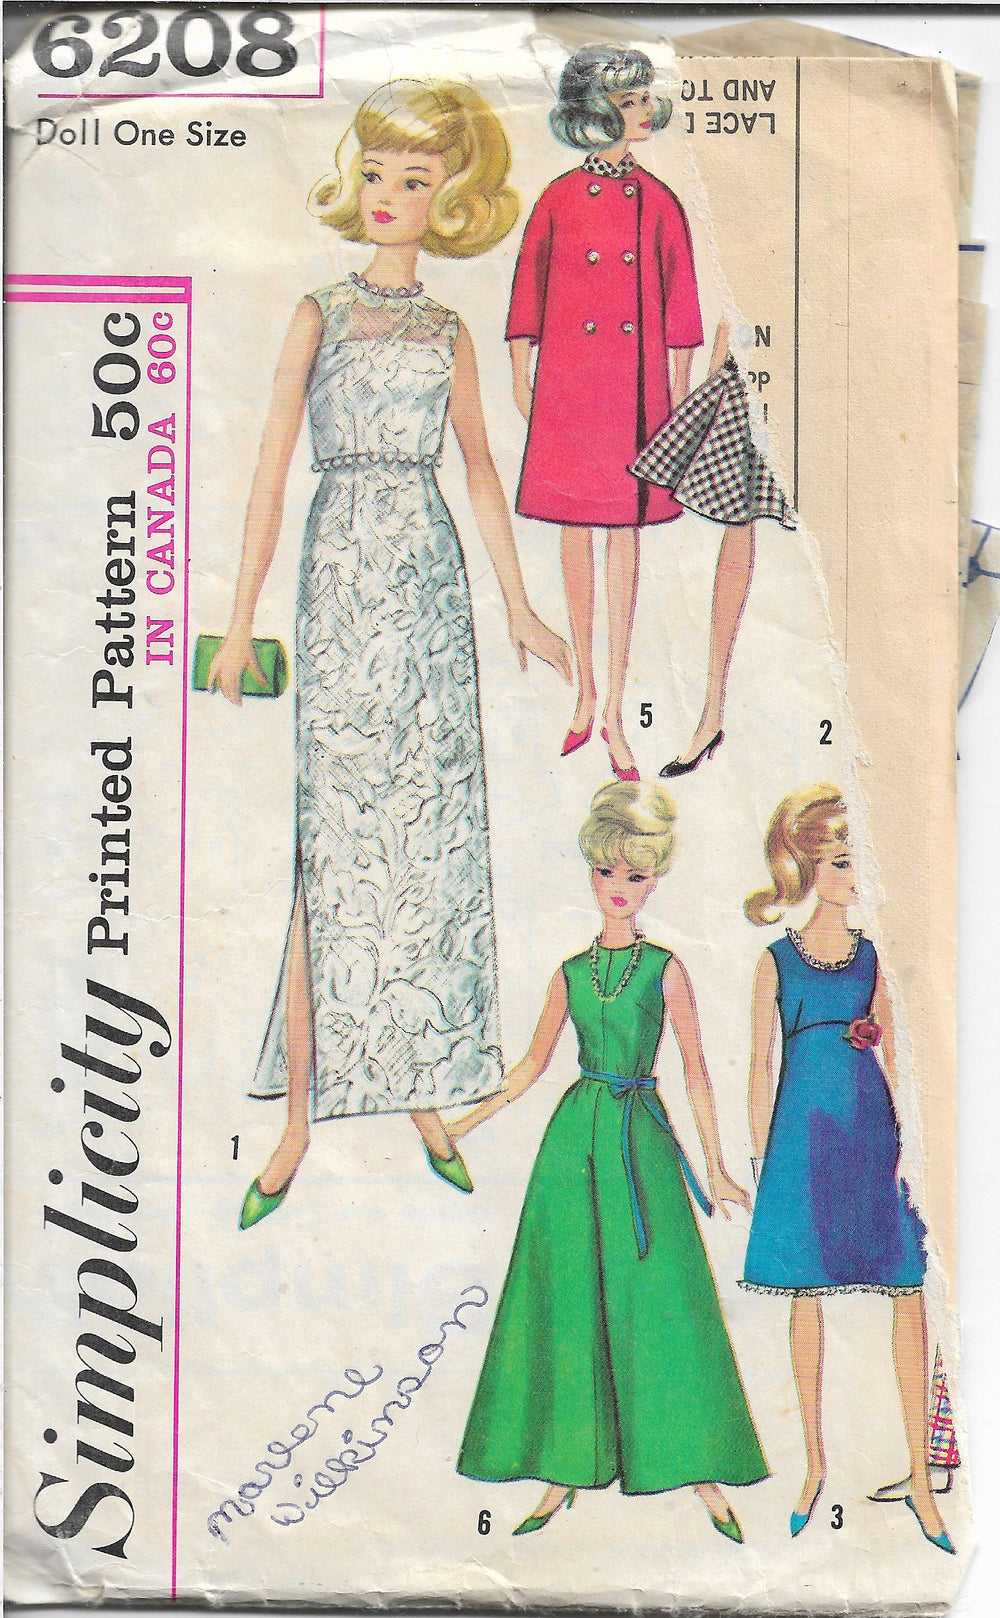 Simplicity 6208 Barbie Doll Clothes Vintage Sewing Craft Pattern 1960s - VintageStitching - Vintage Sewing Patterns